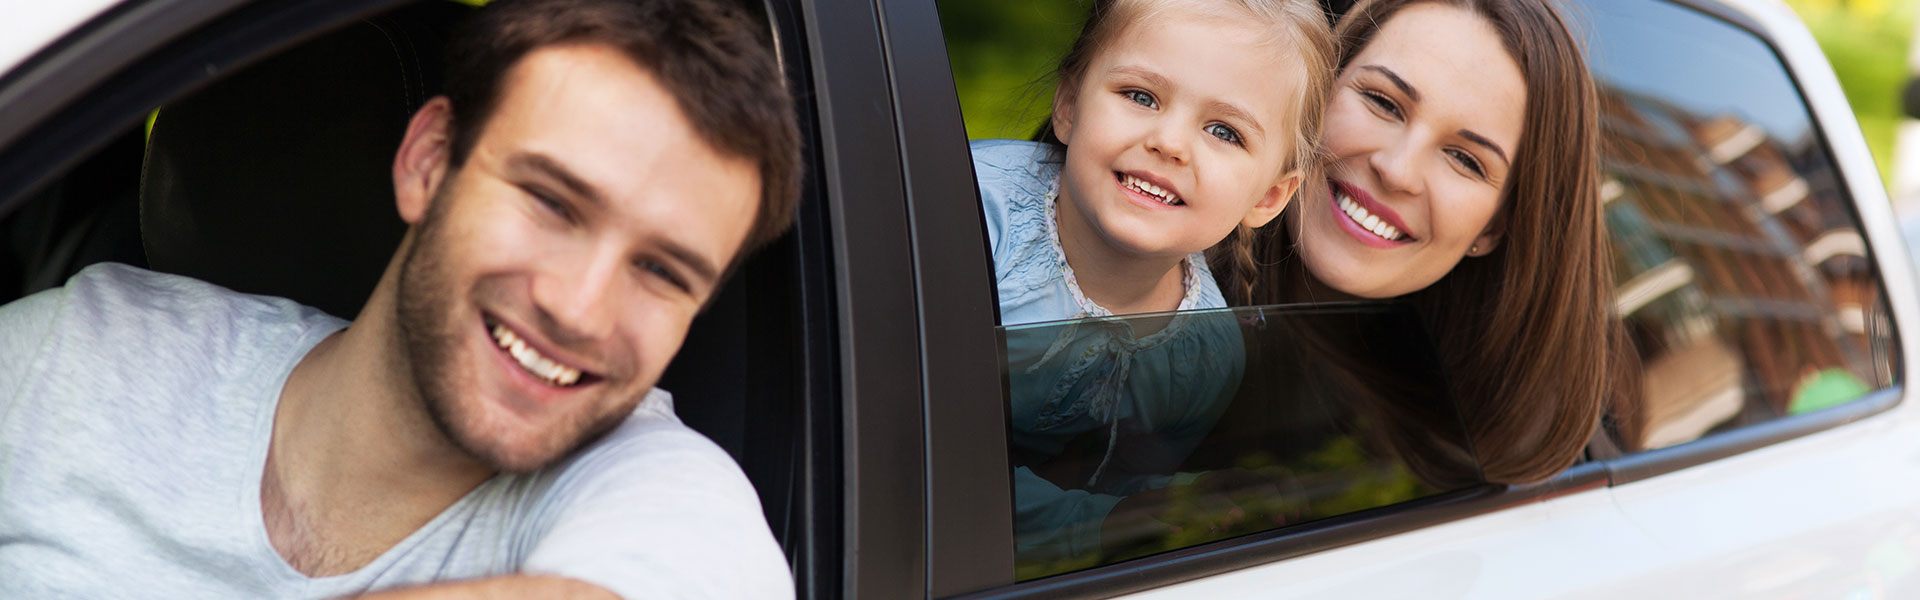 Auto Insurance in Devils Lake ND, Hillsboro ND, Jamestown, West Fargo